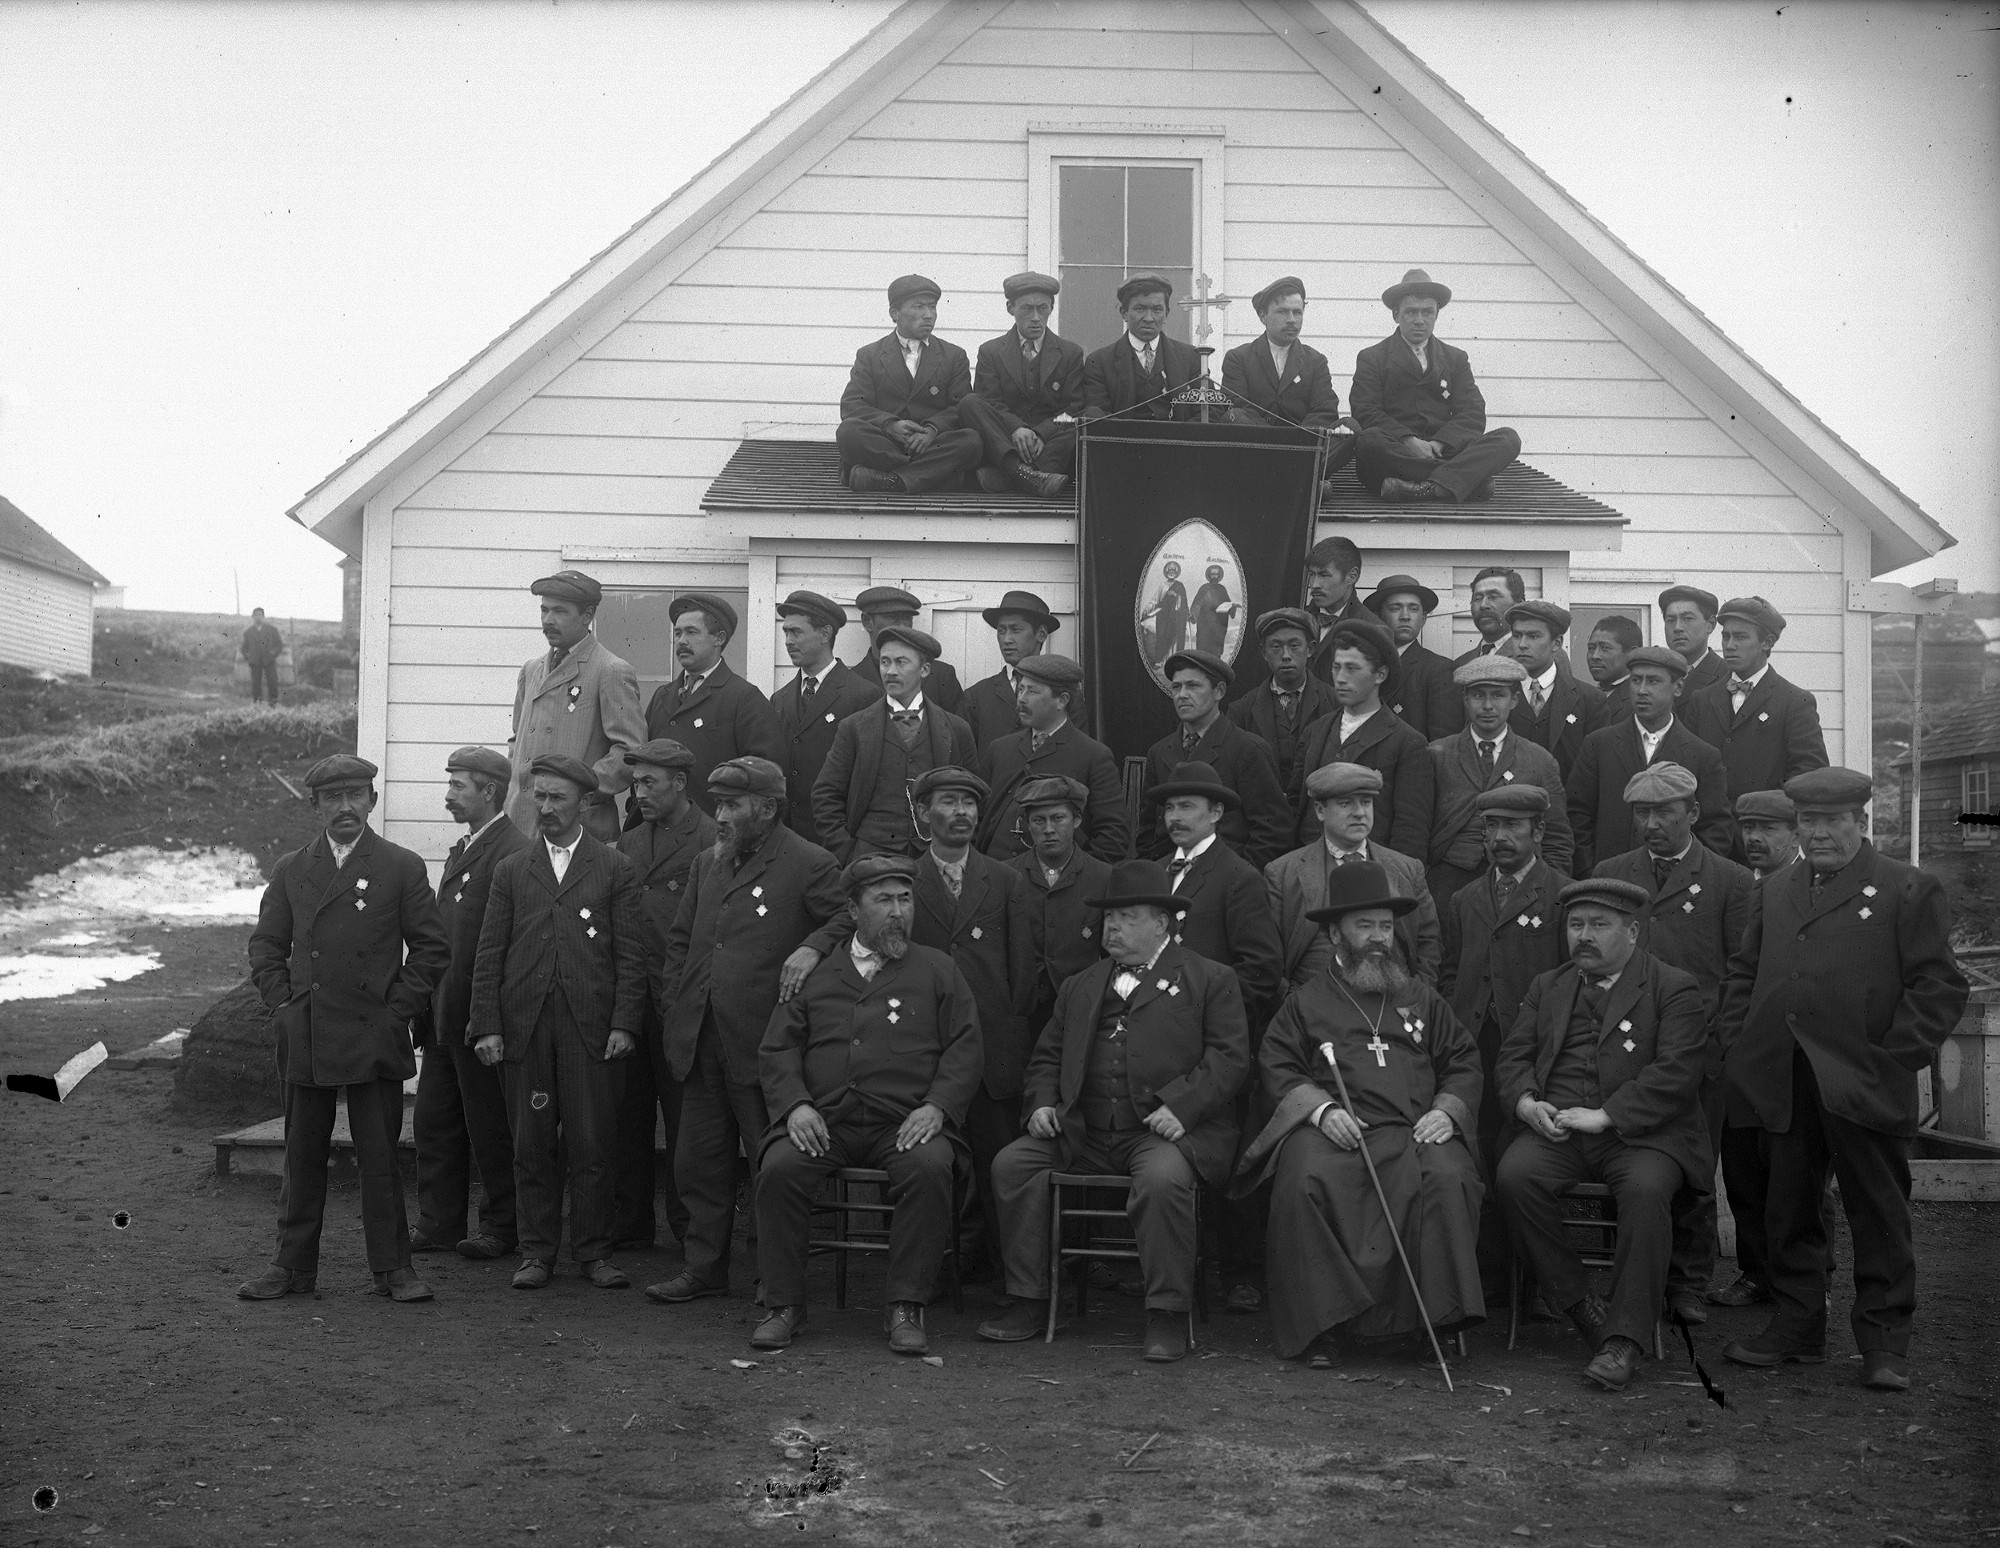 Indigenous Aleut residents of Saint Paul in the 1910s. Native Alaskans had inhabited the island for thousands of years before they were forcibly removed by U.S. troops during the Second World War. (U.S. National Archives) lutheran indian ministries native news